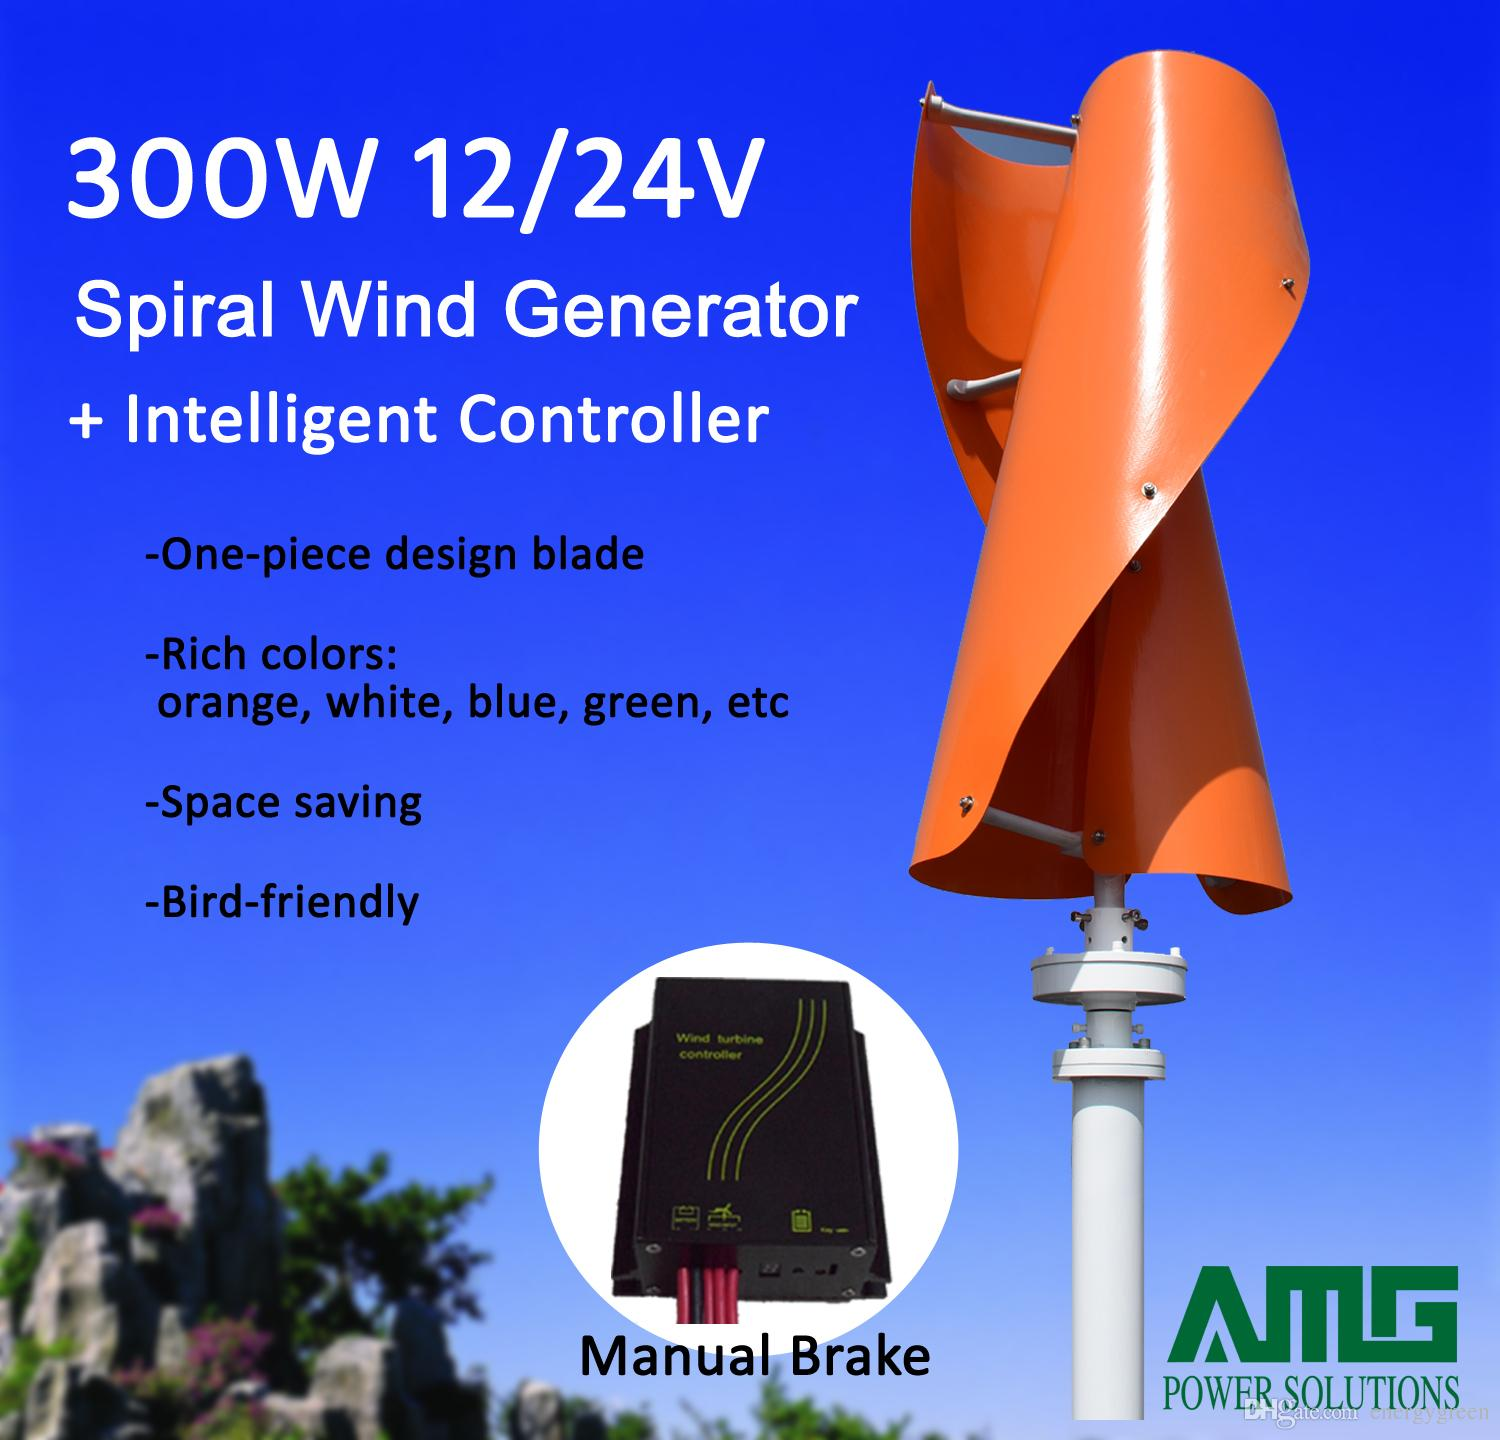 300w 12v 24v Vertical Axis Helix Home Use Wind Turbine Generator